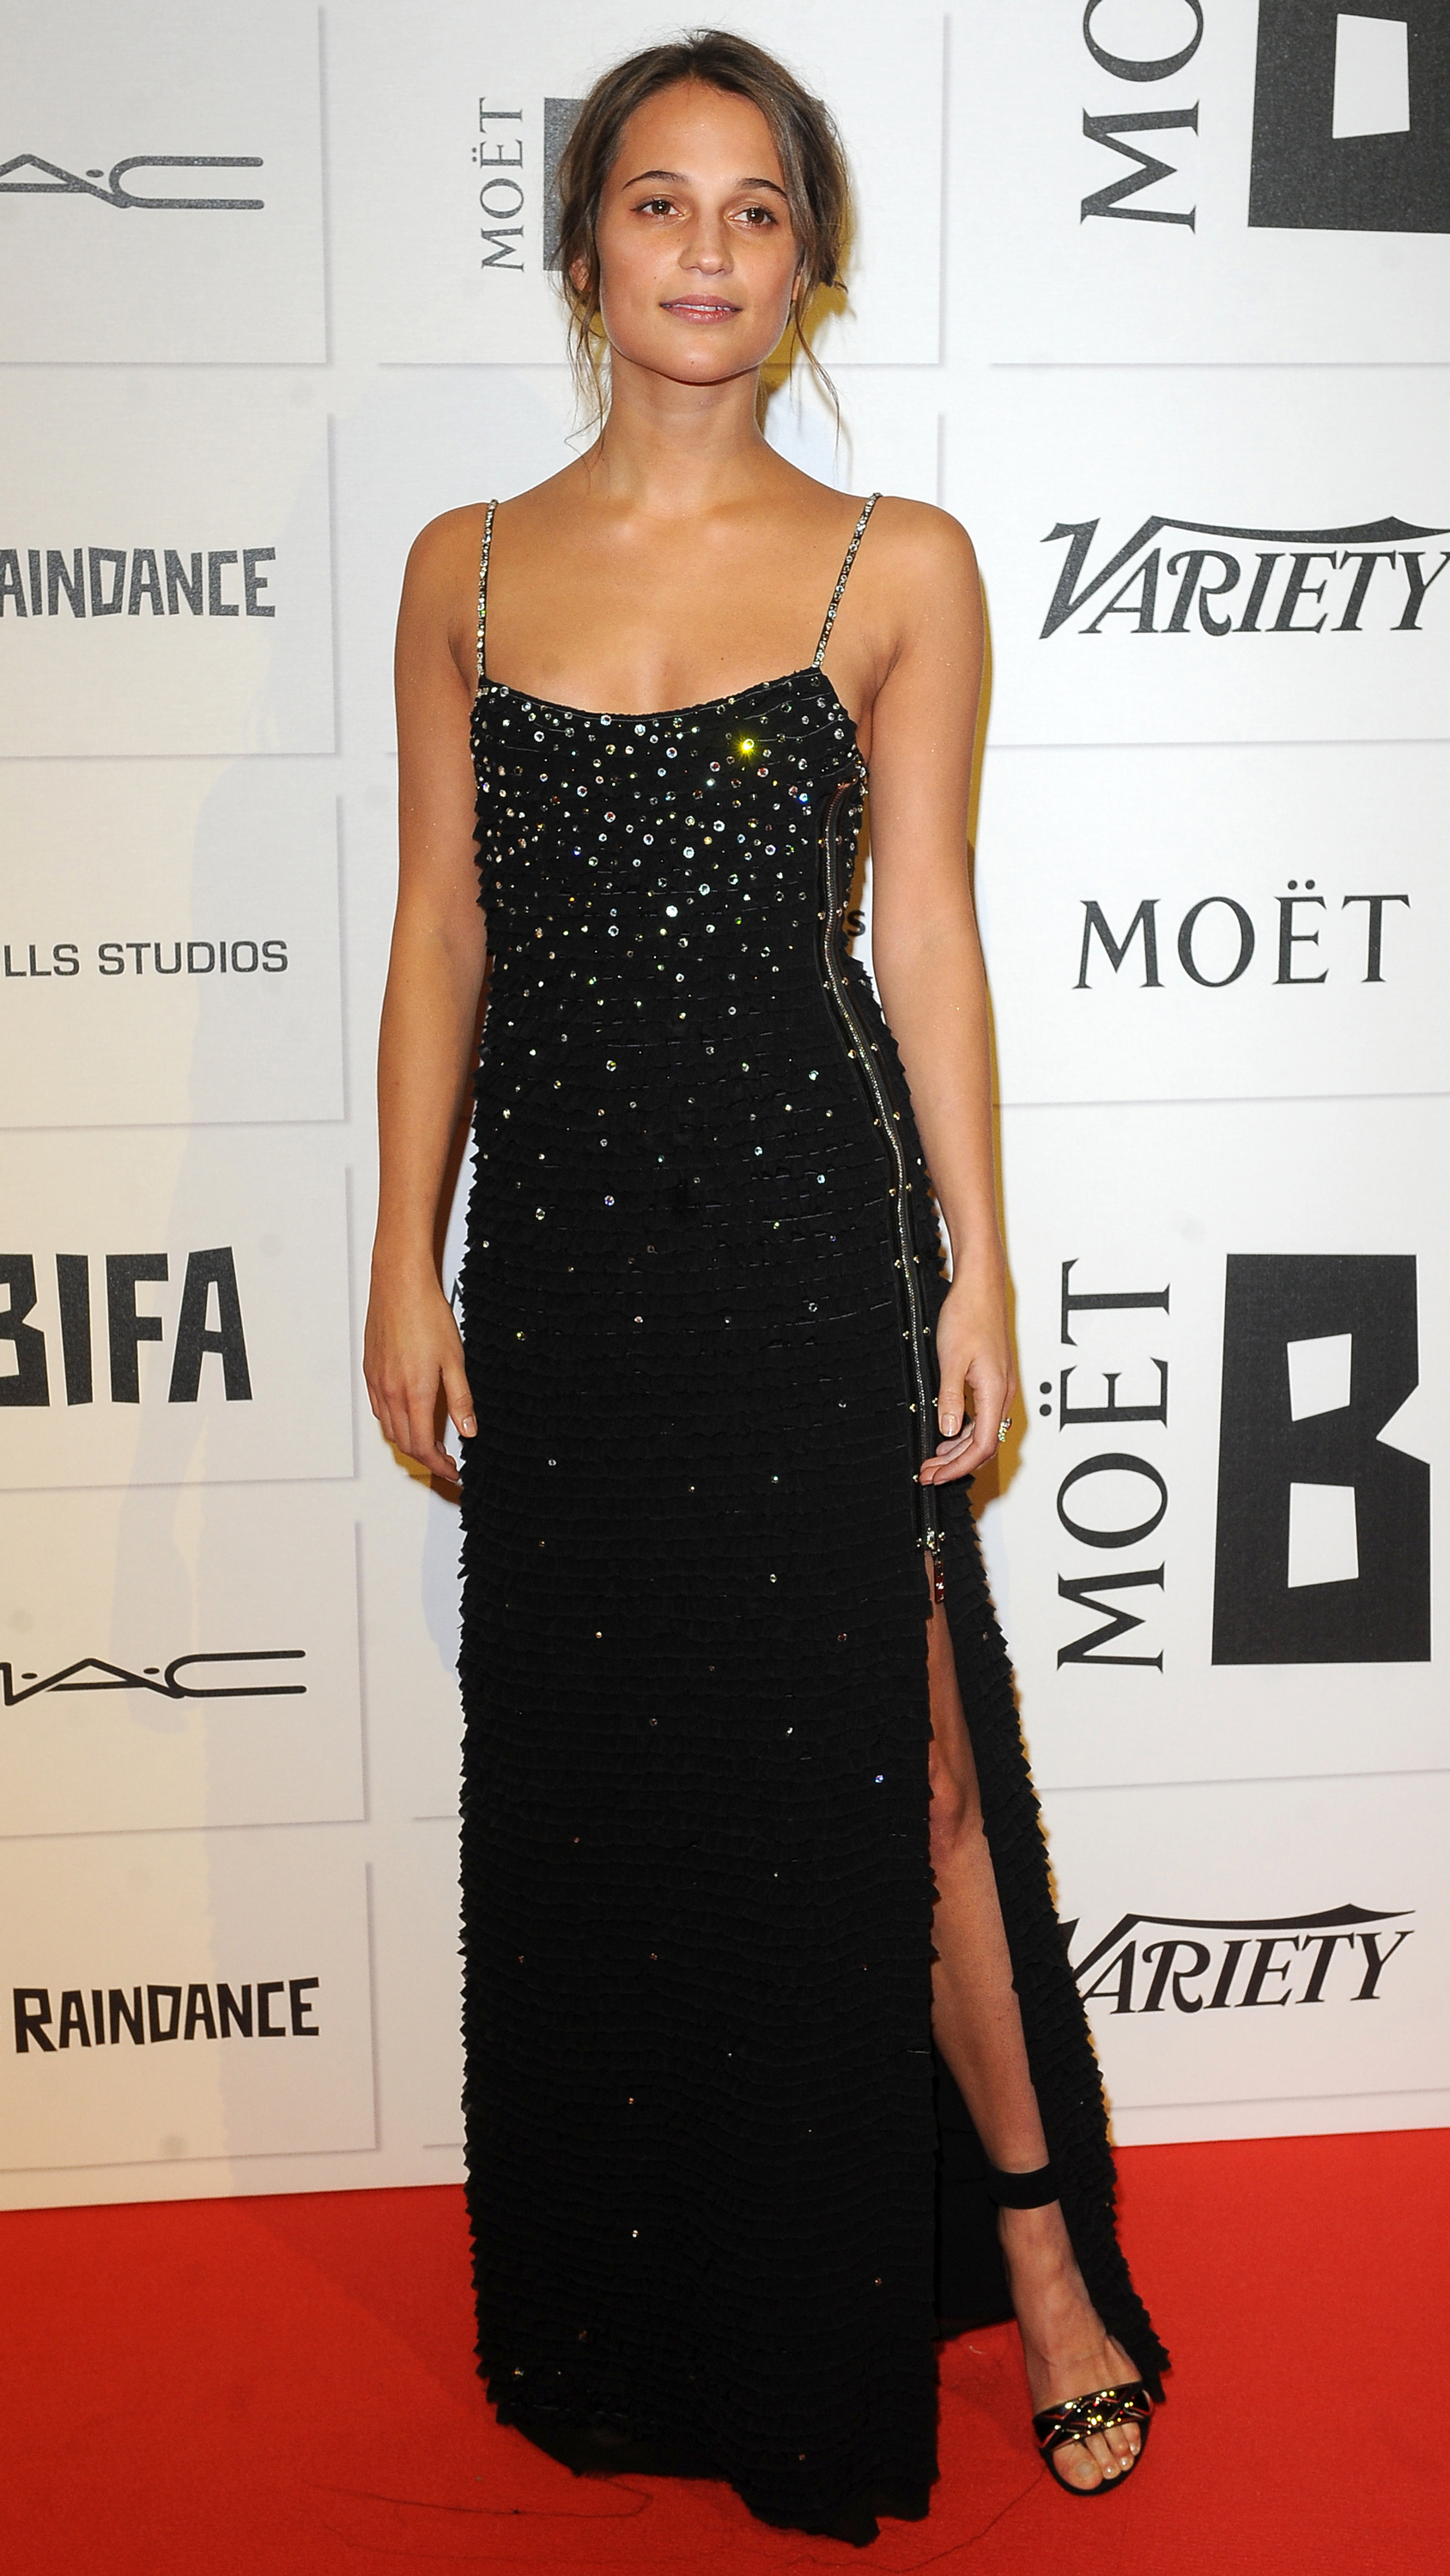 "The attendees of this year's British Independent Film Awards clearly got our <a href=""http://honey.ninemsn.com.au/2015/11/27/15/04/sequin-and-glitter-party-dresses-tops-skirts-and-jumpsuits"" target=""_blank"">party dressing memo</a>, because sequinned and metallic gowns ruled the red carpet. Click through to see all the looks, and take some inspiration for a Saturday night spent dancing to Ms Houston."